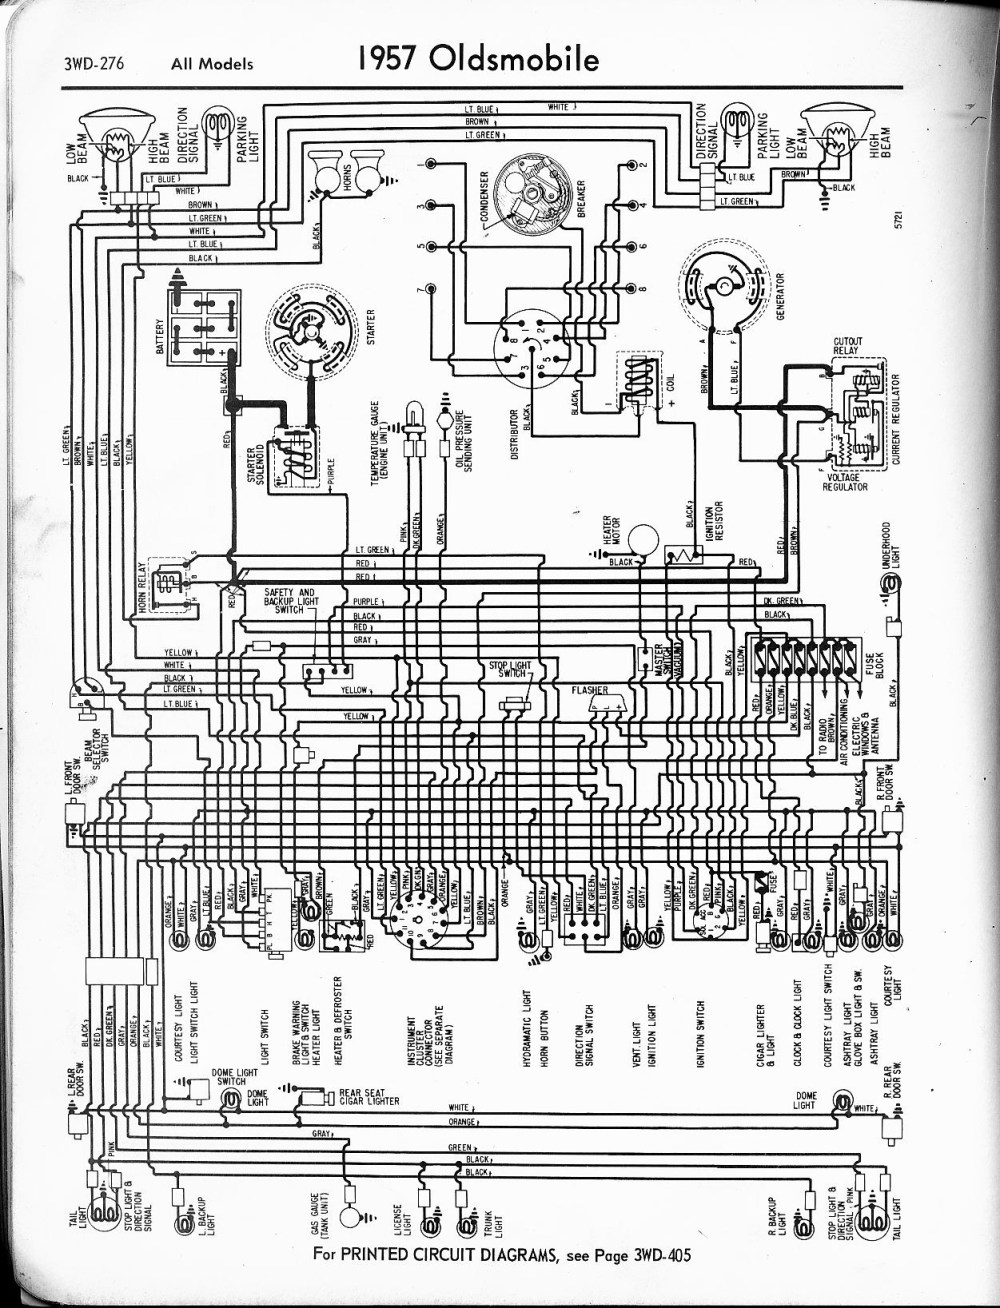 medium resolution of 2004 kia amanti engine diagram wiring diagram besides 1996 oldsmobile cutlass engine wiring diagram of 2004